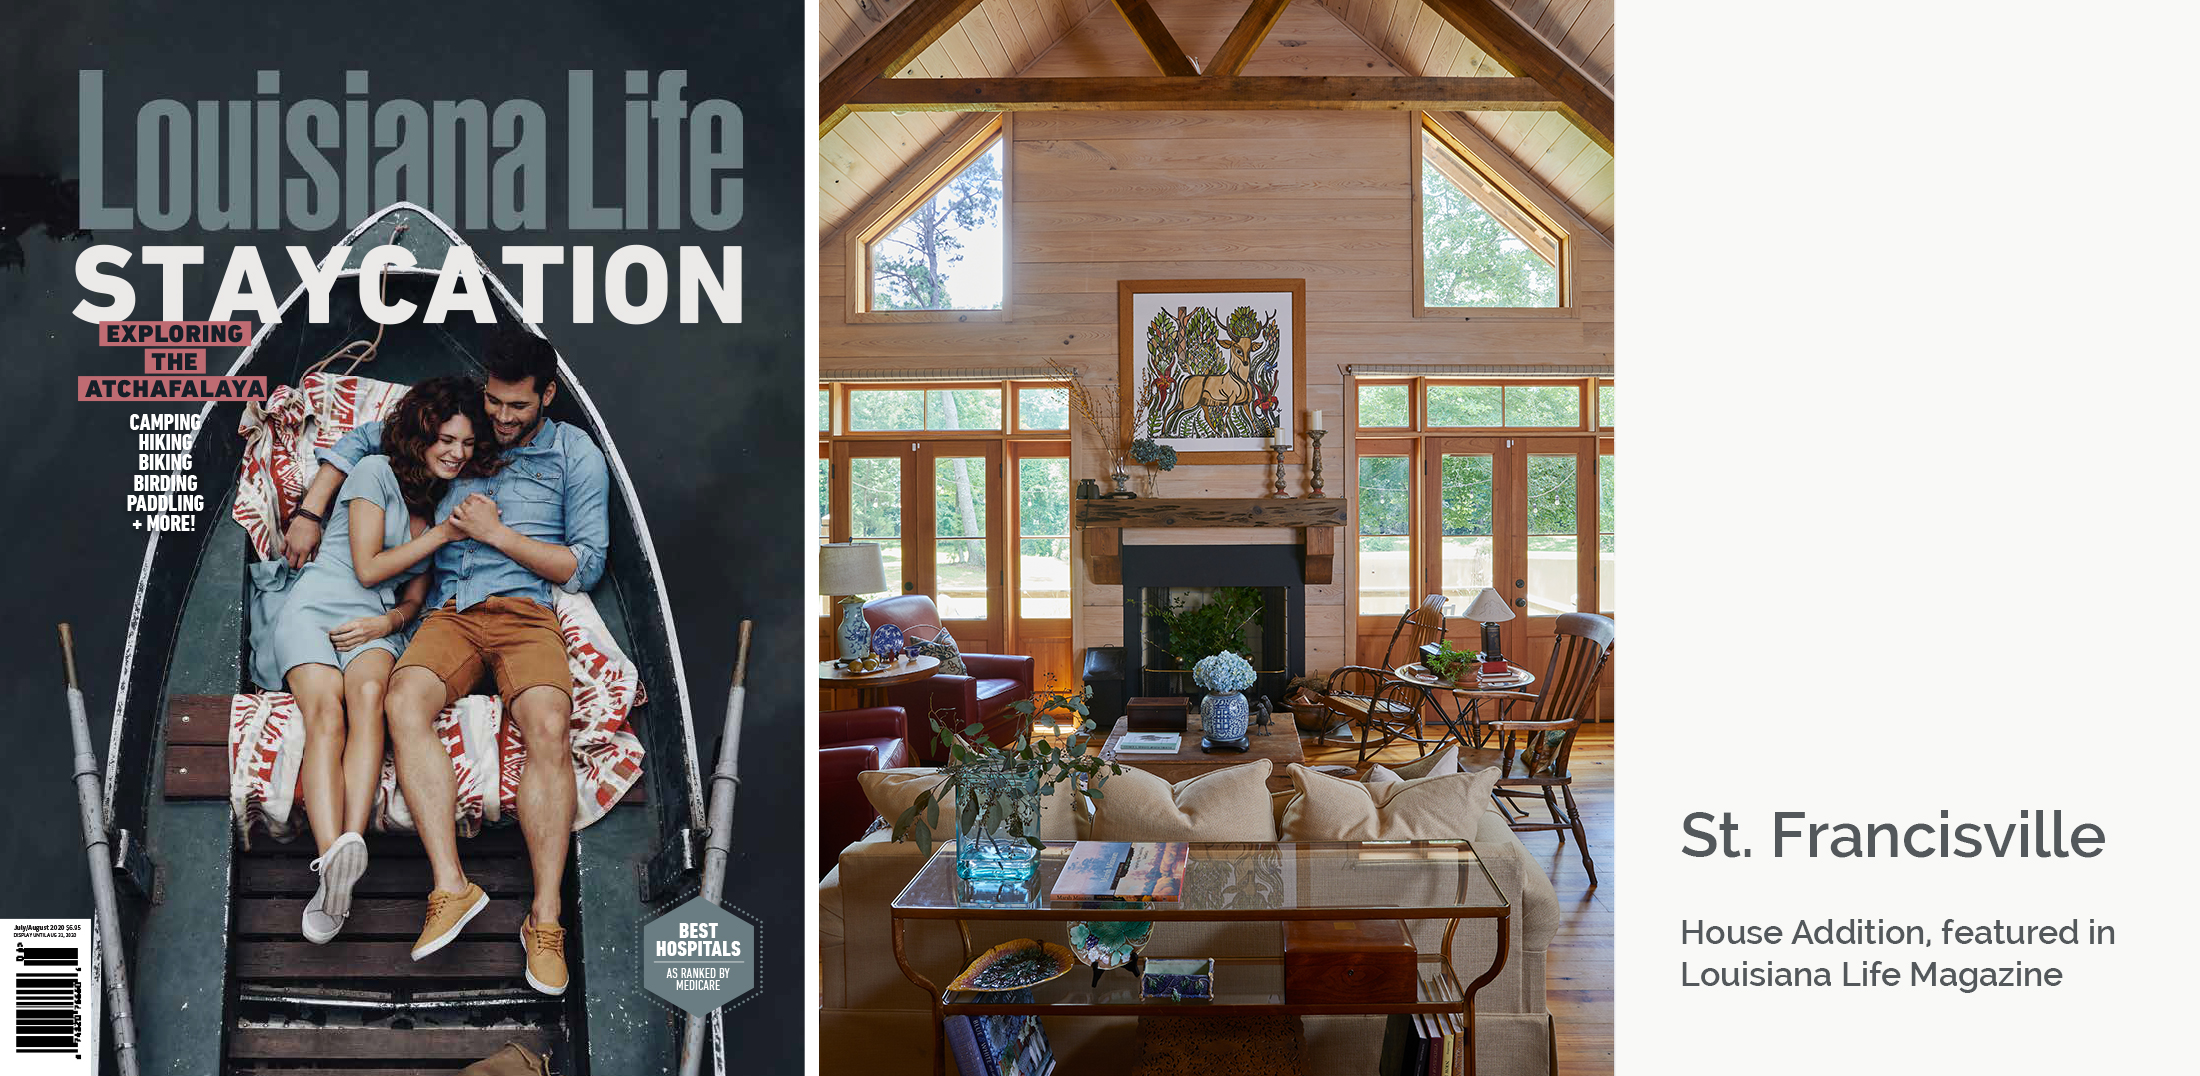 Louisiana Life Magazine Featured Article - Woolf Architecture